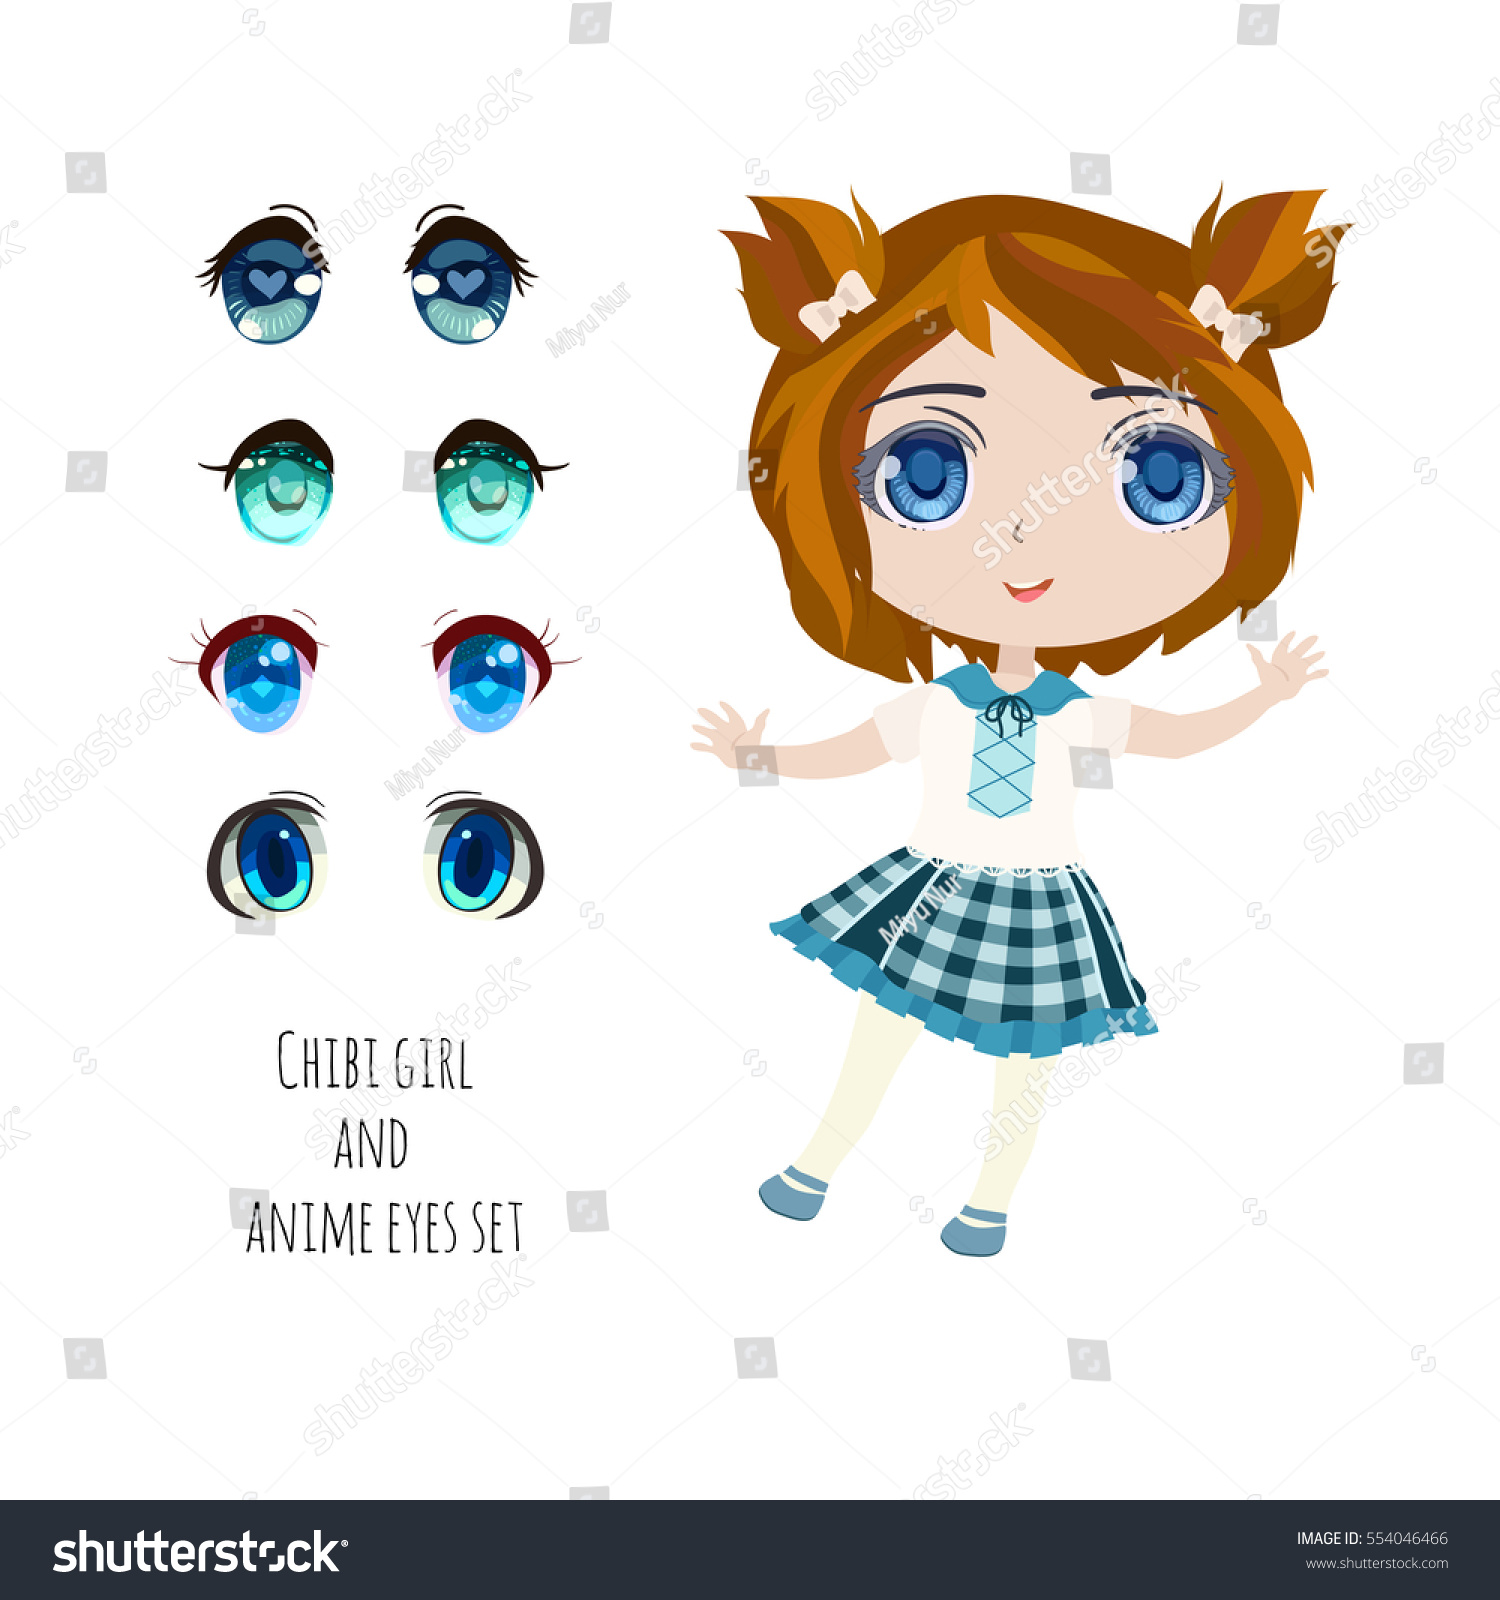 Blue Anime Eyes Set Cute Chibi Vector de stock554046466: Shutterstock